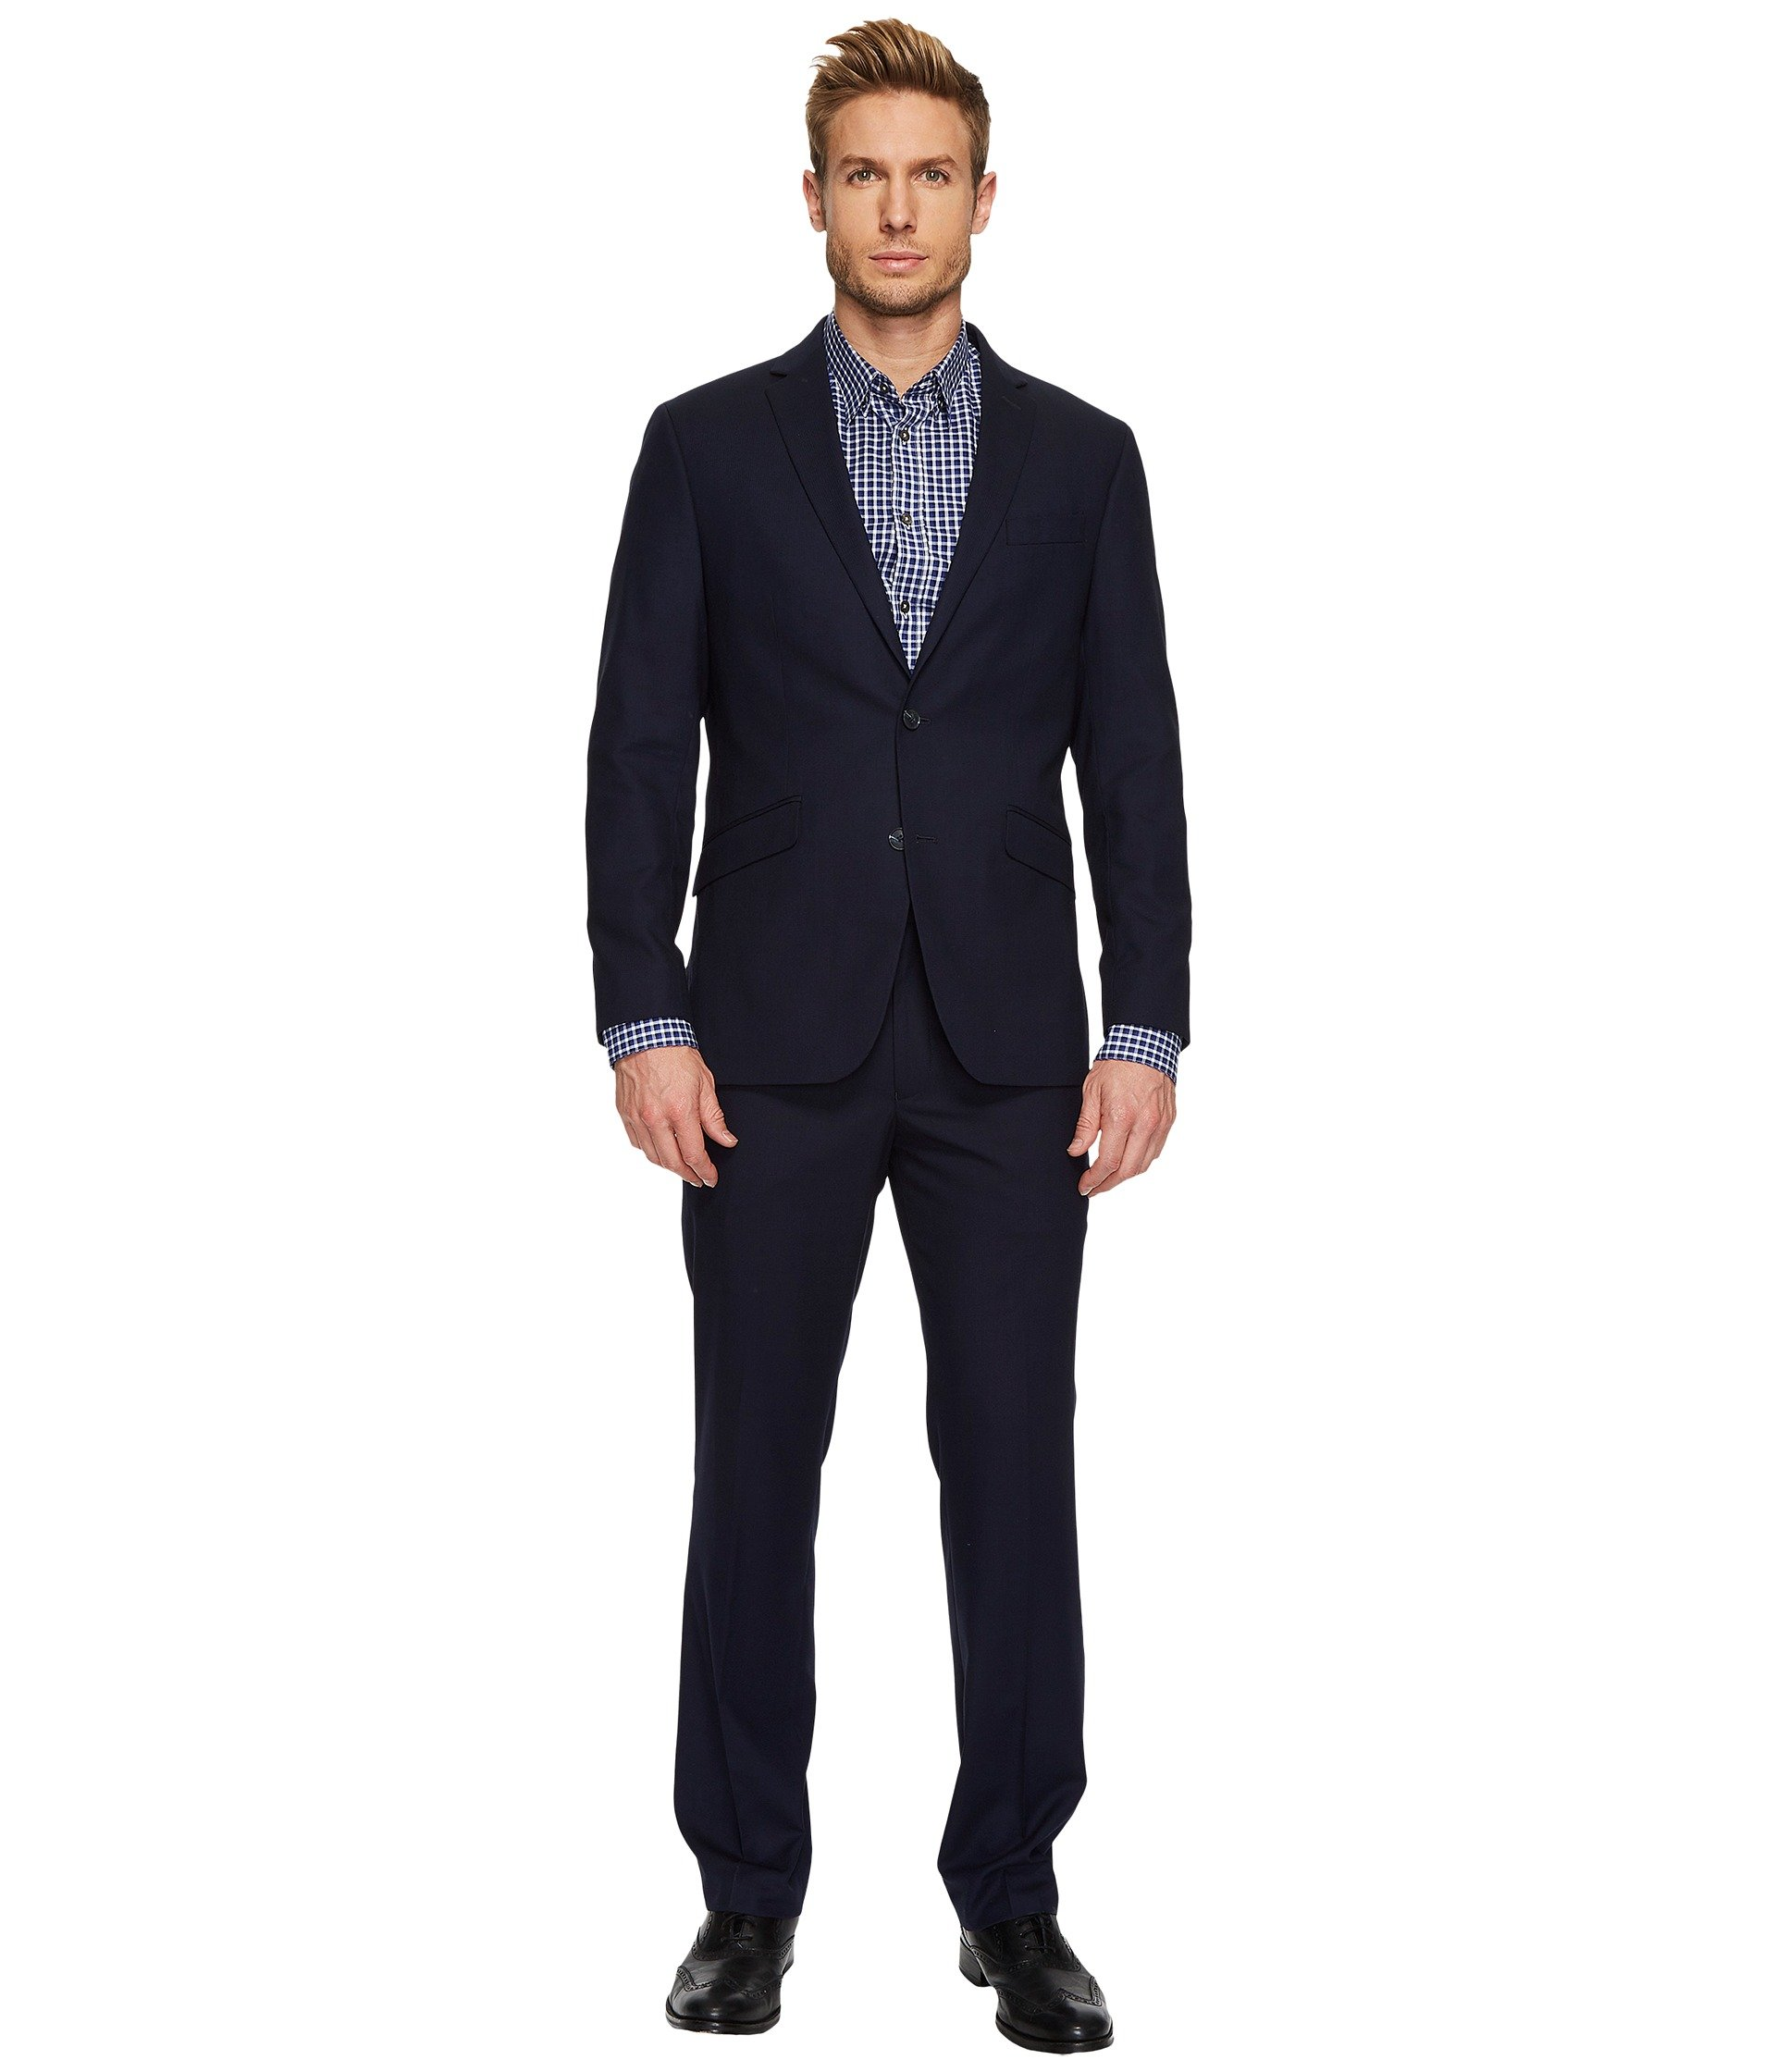 Vestido para Hombre Kenneth Cole Reaction Flatiron Hustle Mini Check Suit  + Kenneth Cole Reaction en VeoyCompro.net